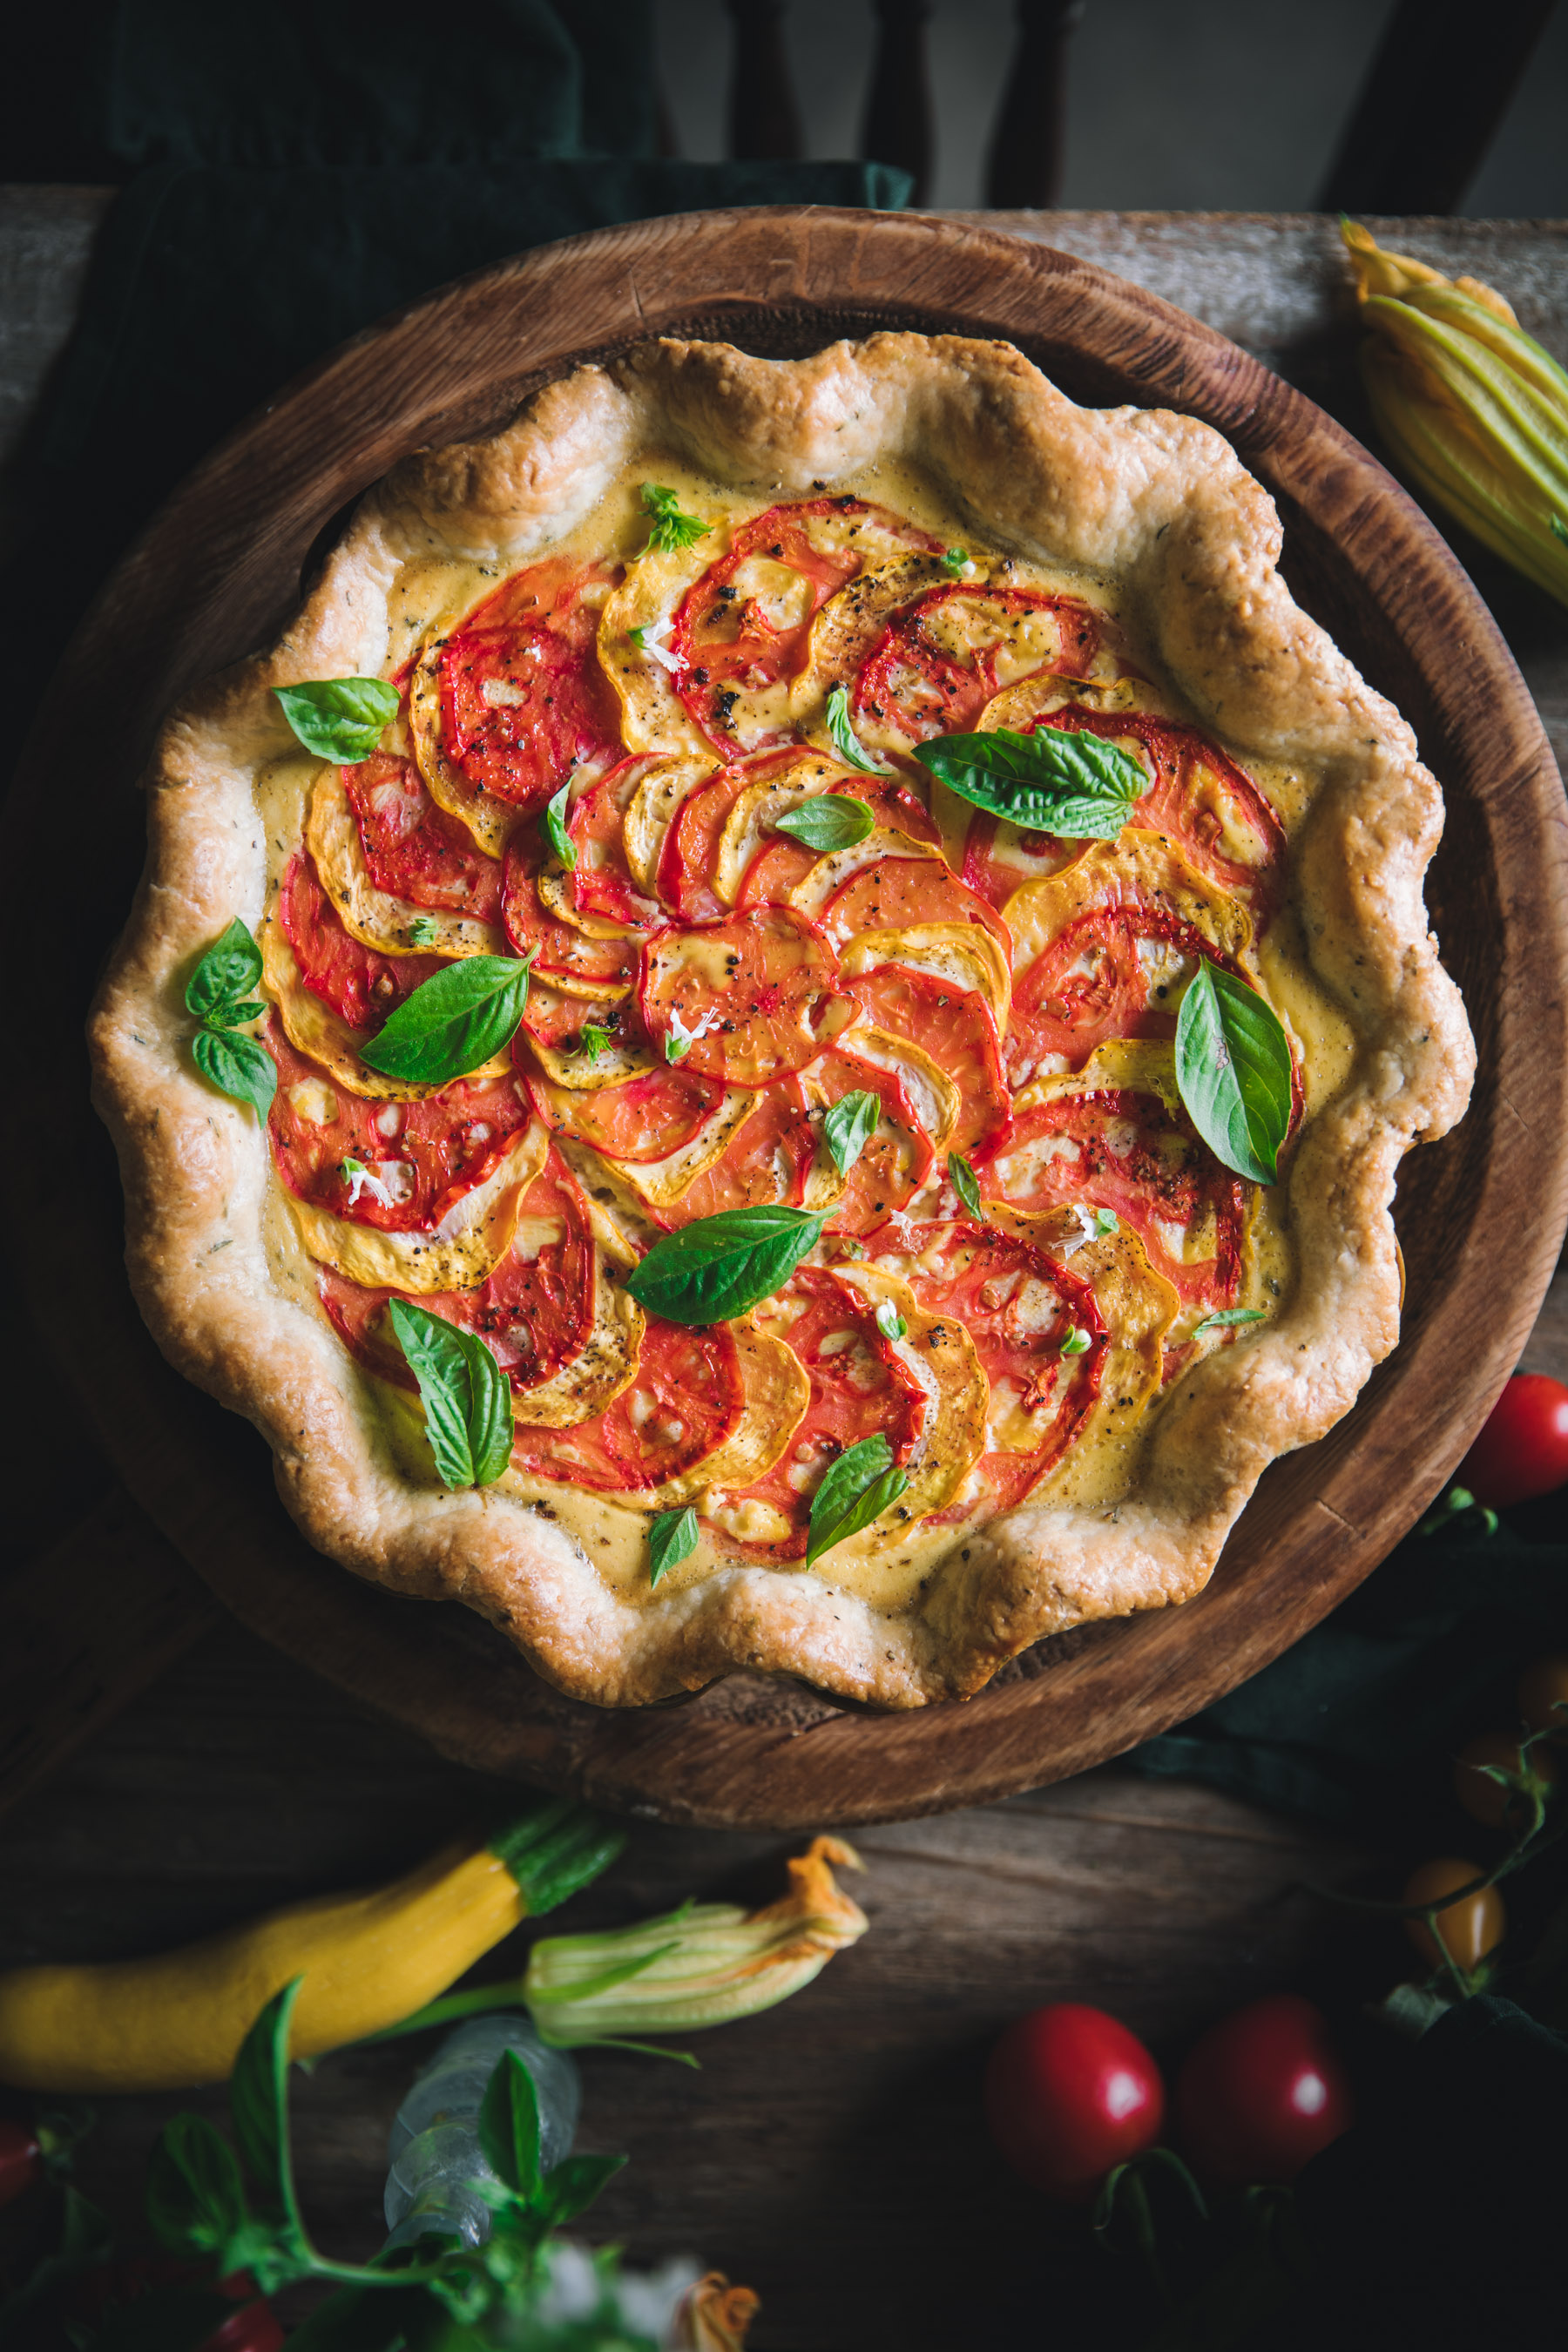 Tomato and Zucchini Quiche